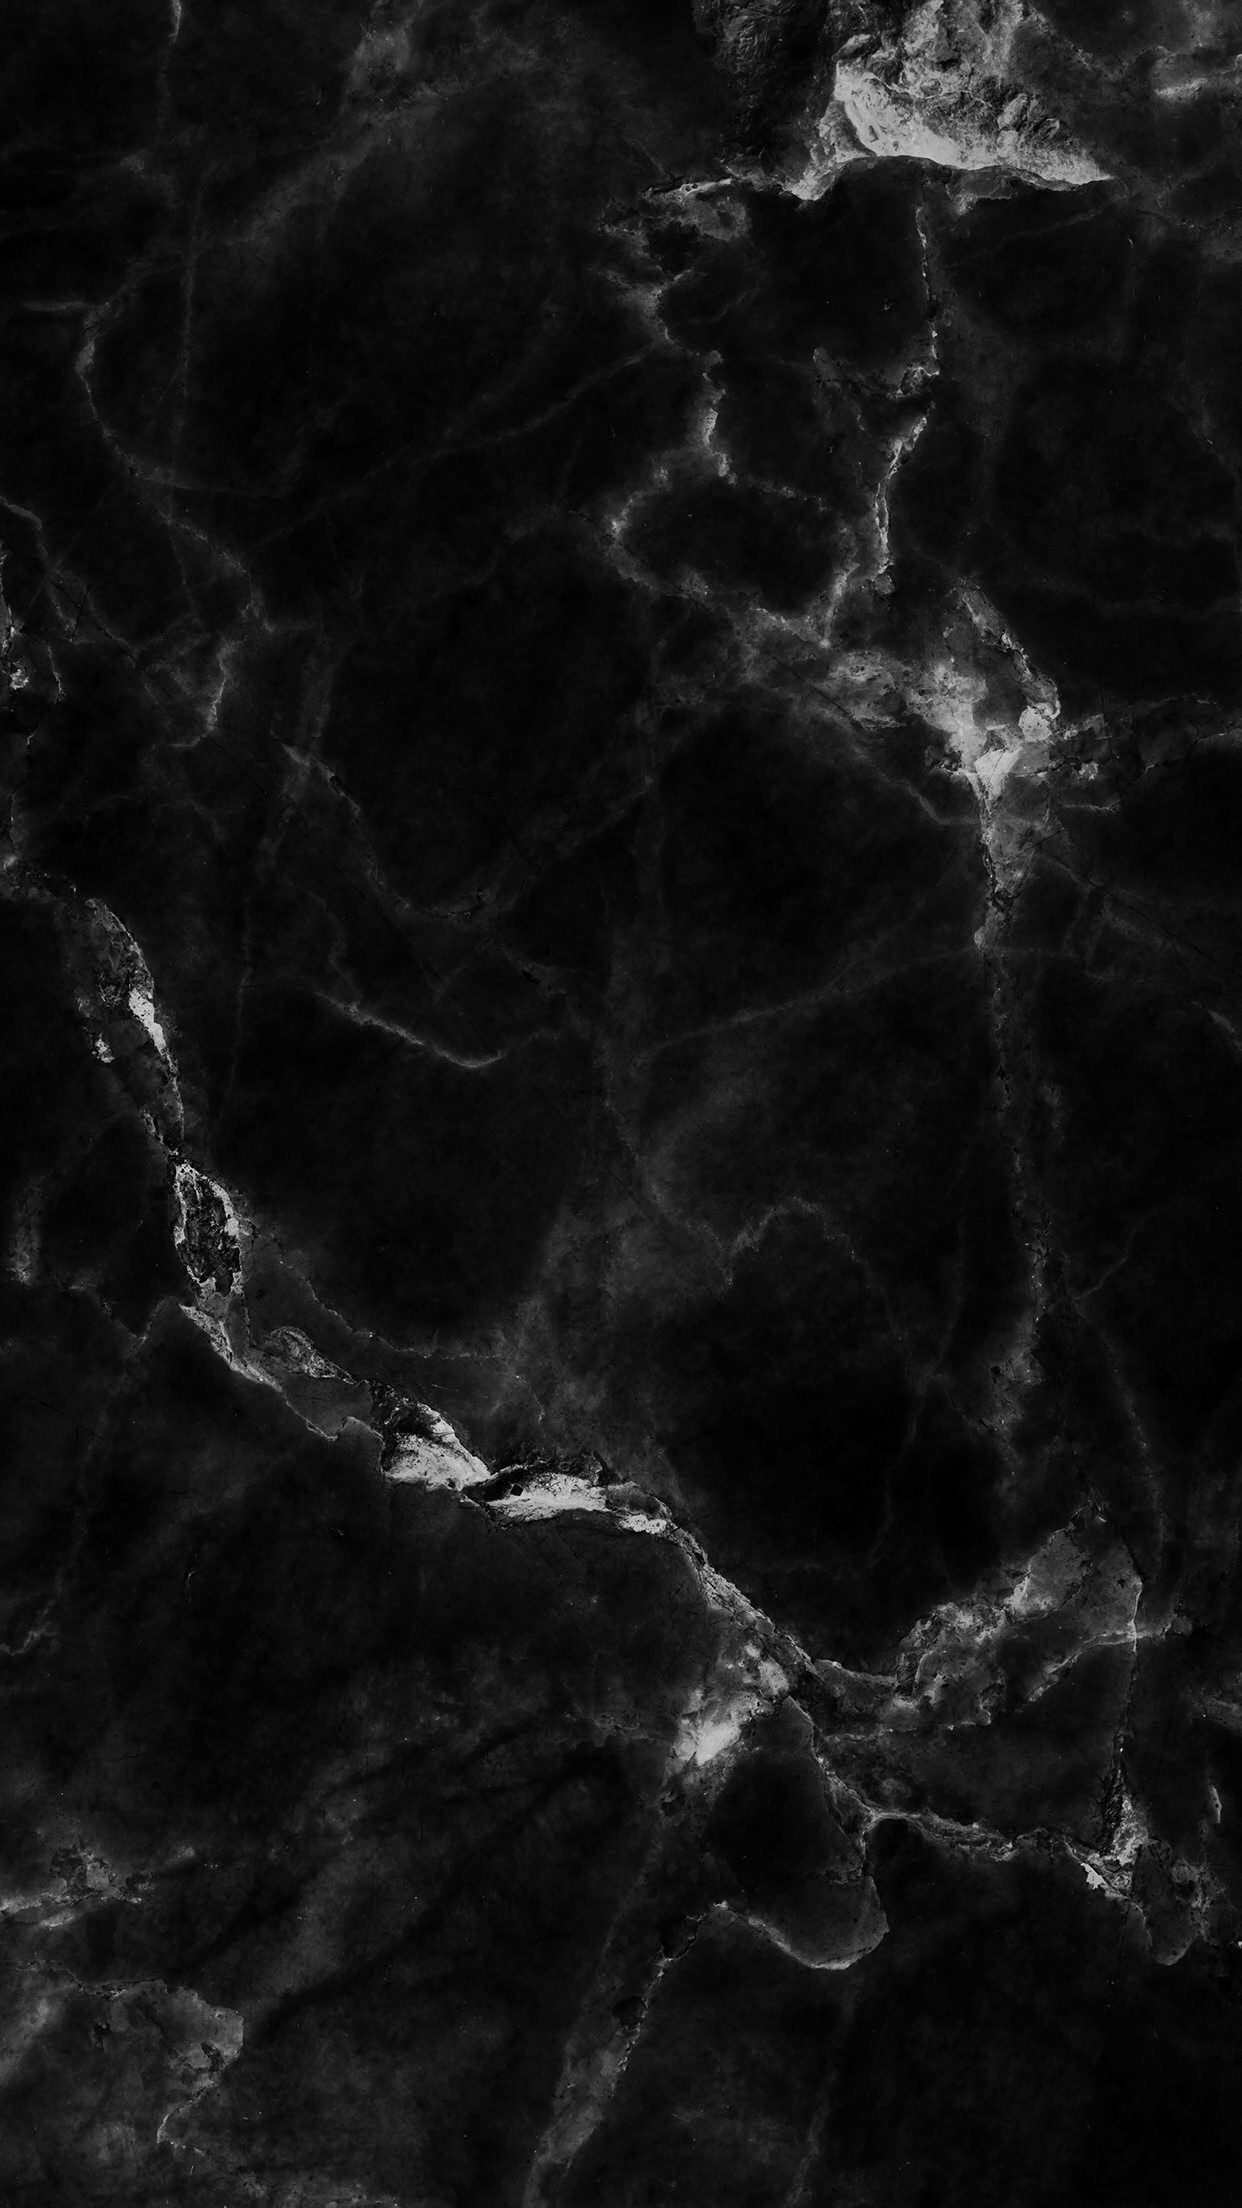 Black White Water Sky Atmosphere Black And White In 2020 Marble Iphone Wallpaper Marble Background Iphone Marble Wallpaper Phone